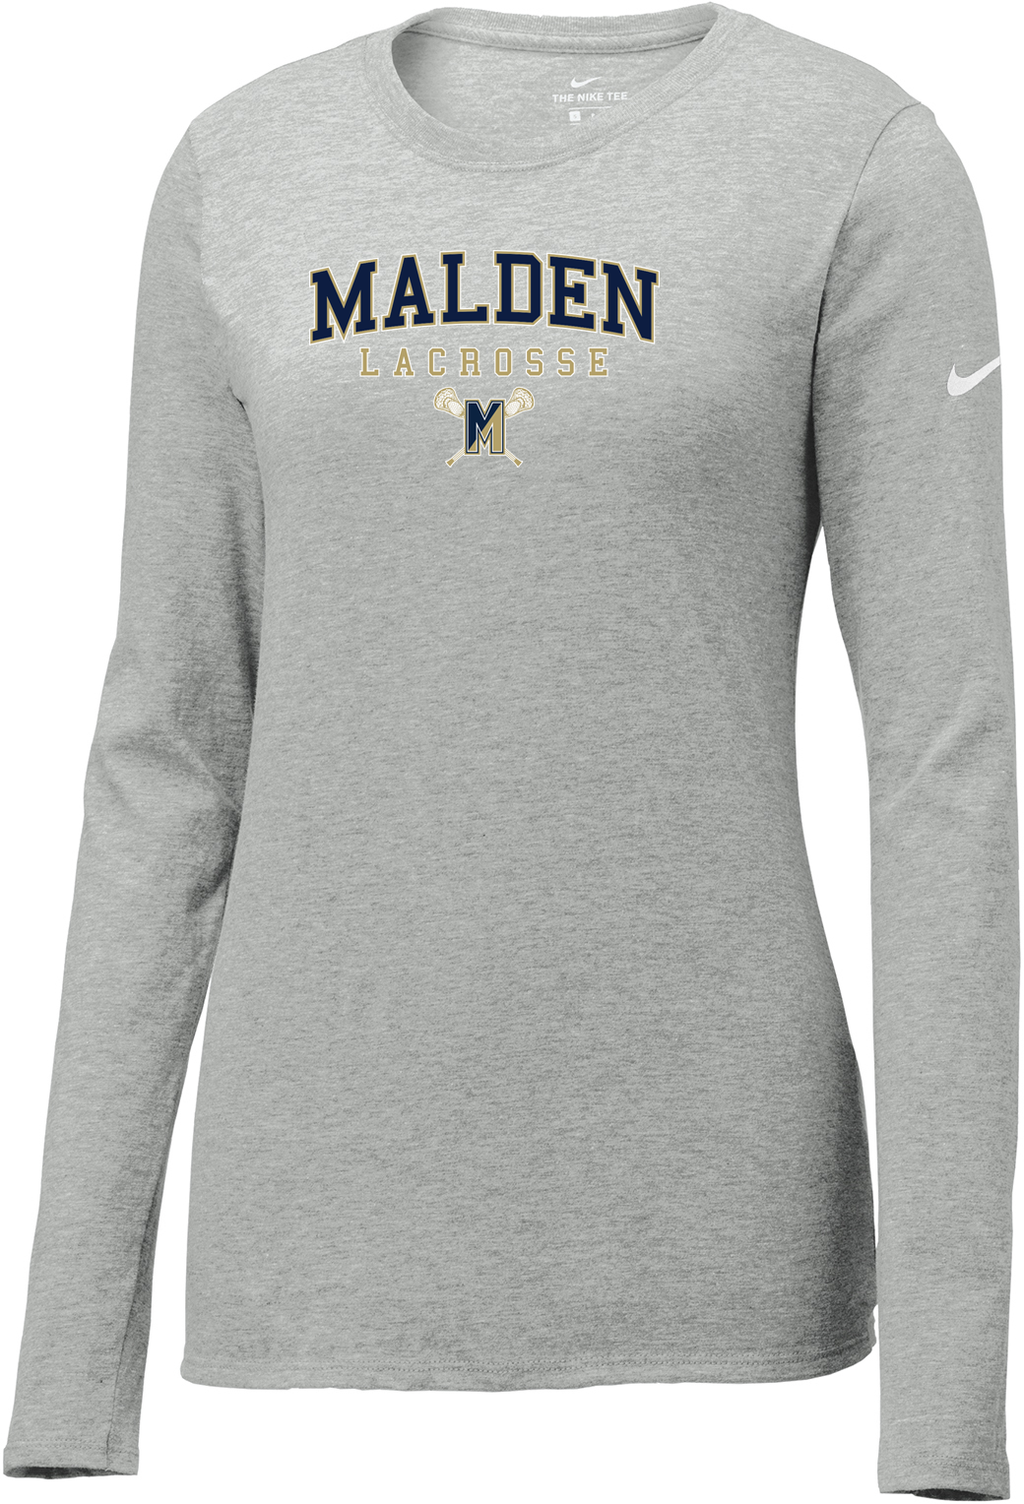 Malden Lacrosse Nike Ladies Core Cotton Long Sleeve Tee